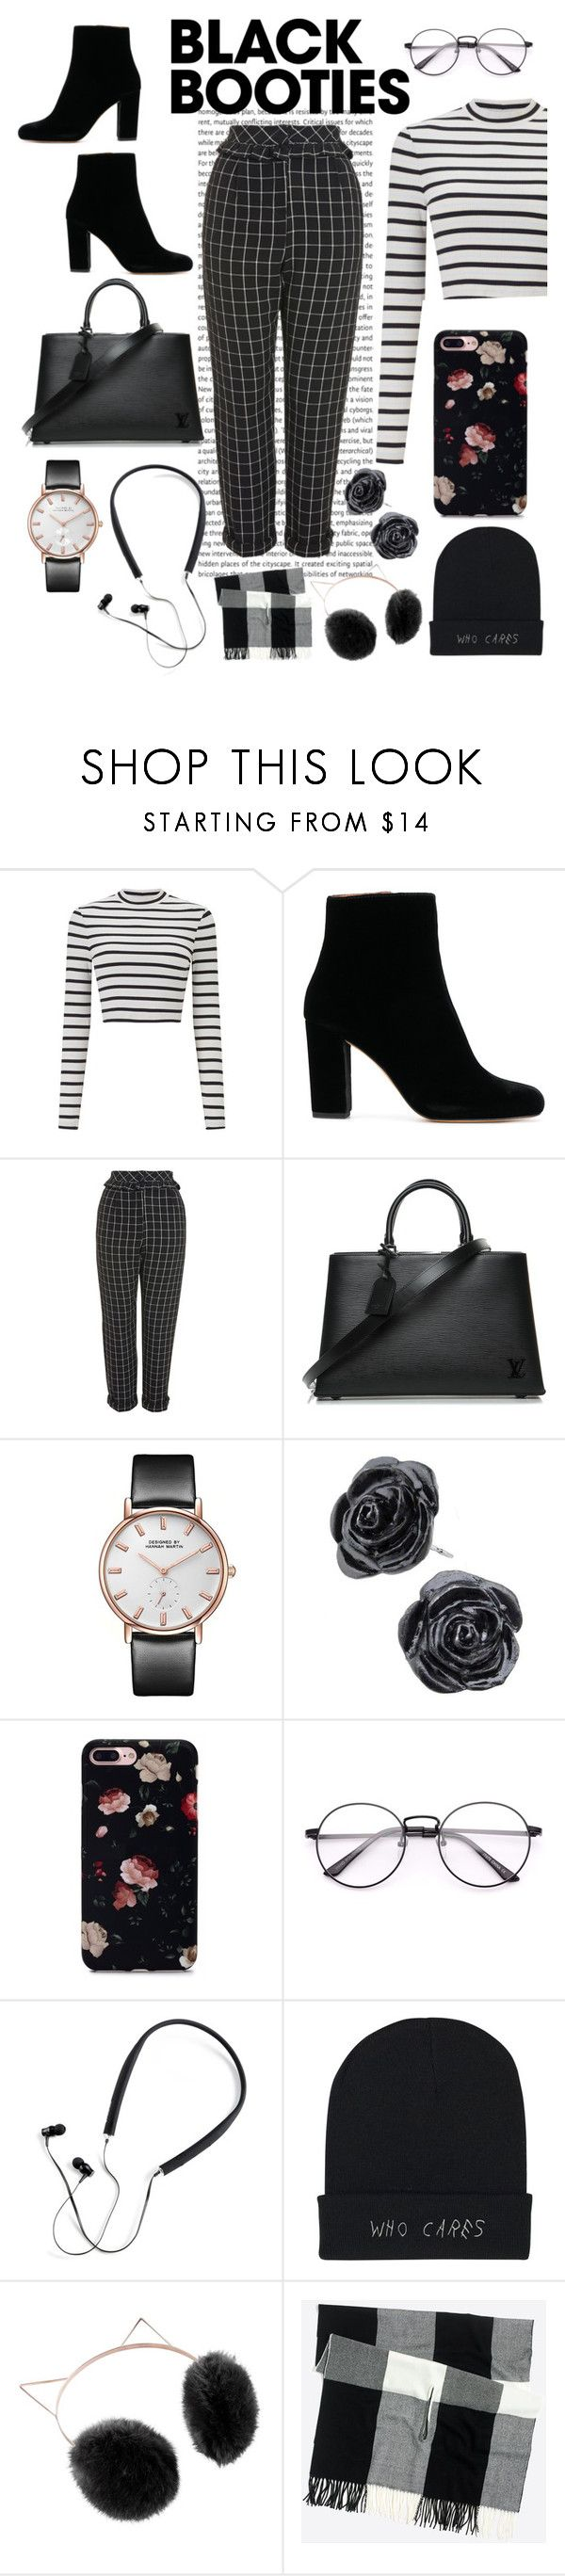 """""""065"""" by holography ❤ liked on Polyvore featuring Miss Selfridge, Topshop, Louis Vuitton, Polaroid and LC Lauren Conrad"""